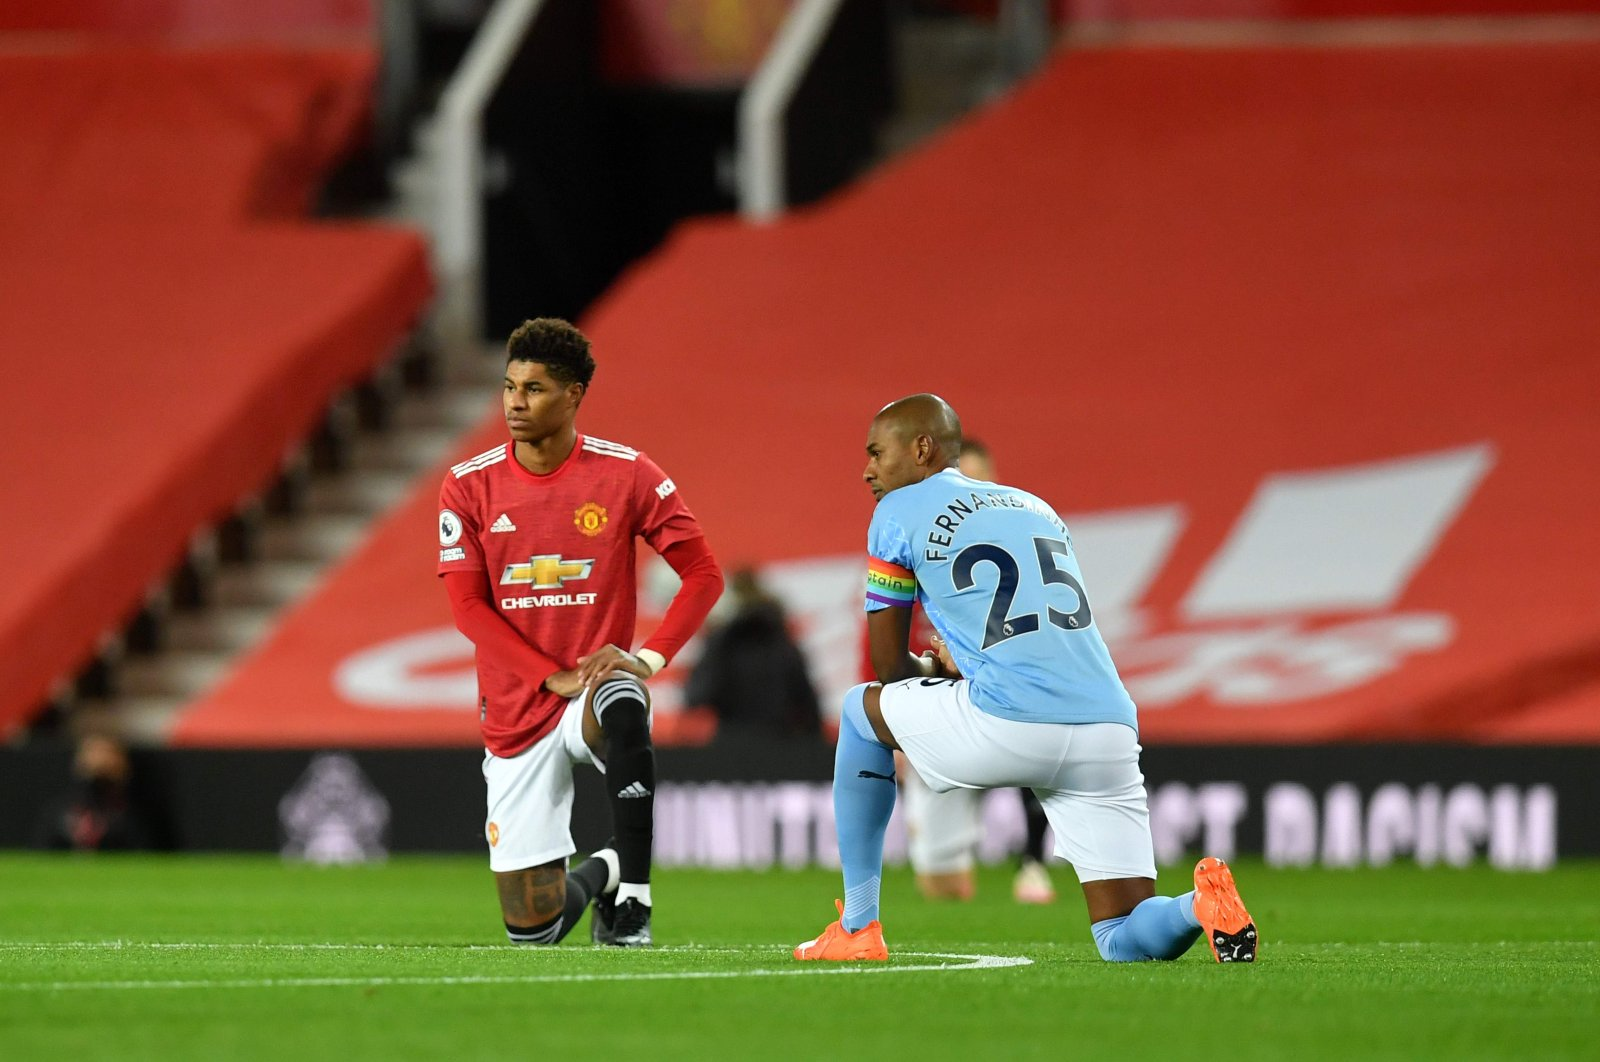 Manchester United's Marcus Rashford (L) and Manchester City's Fernandinho take a knee in support of the Black Lives Matter movement before the English Premier League football match between Manchester United and Manchester City, at the Old Trafford stadium in Manchester, England, Dec. 12, 2020. (AFP Photo)